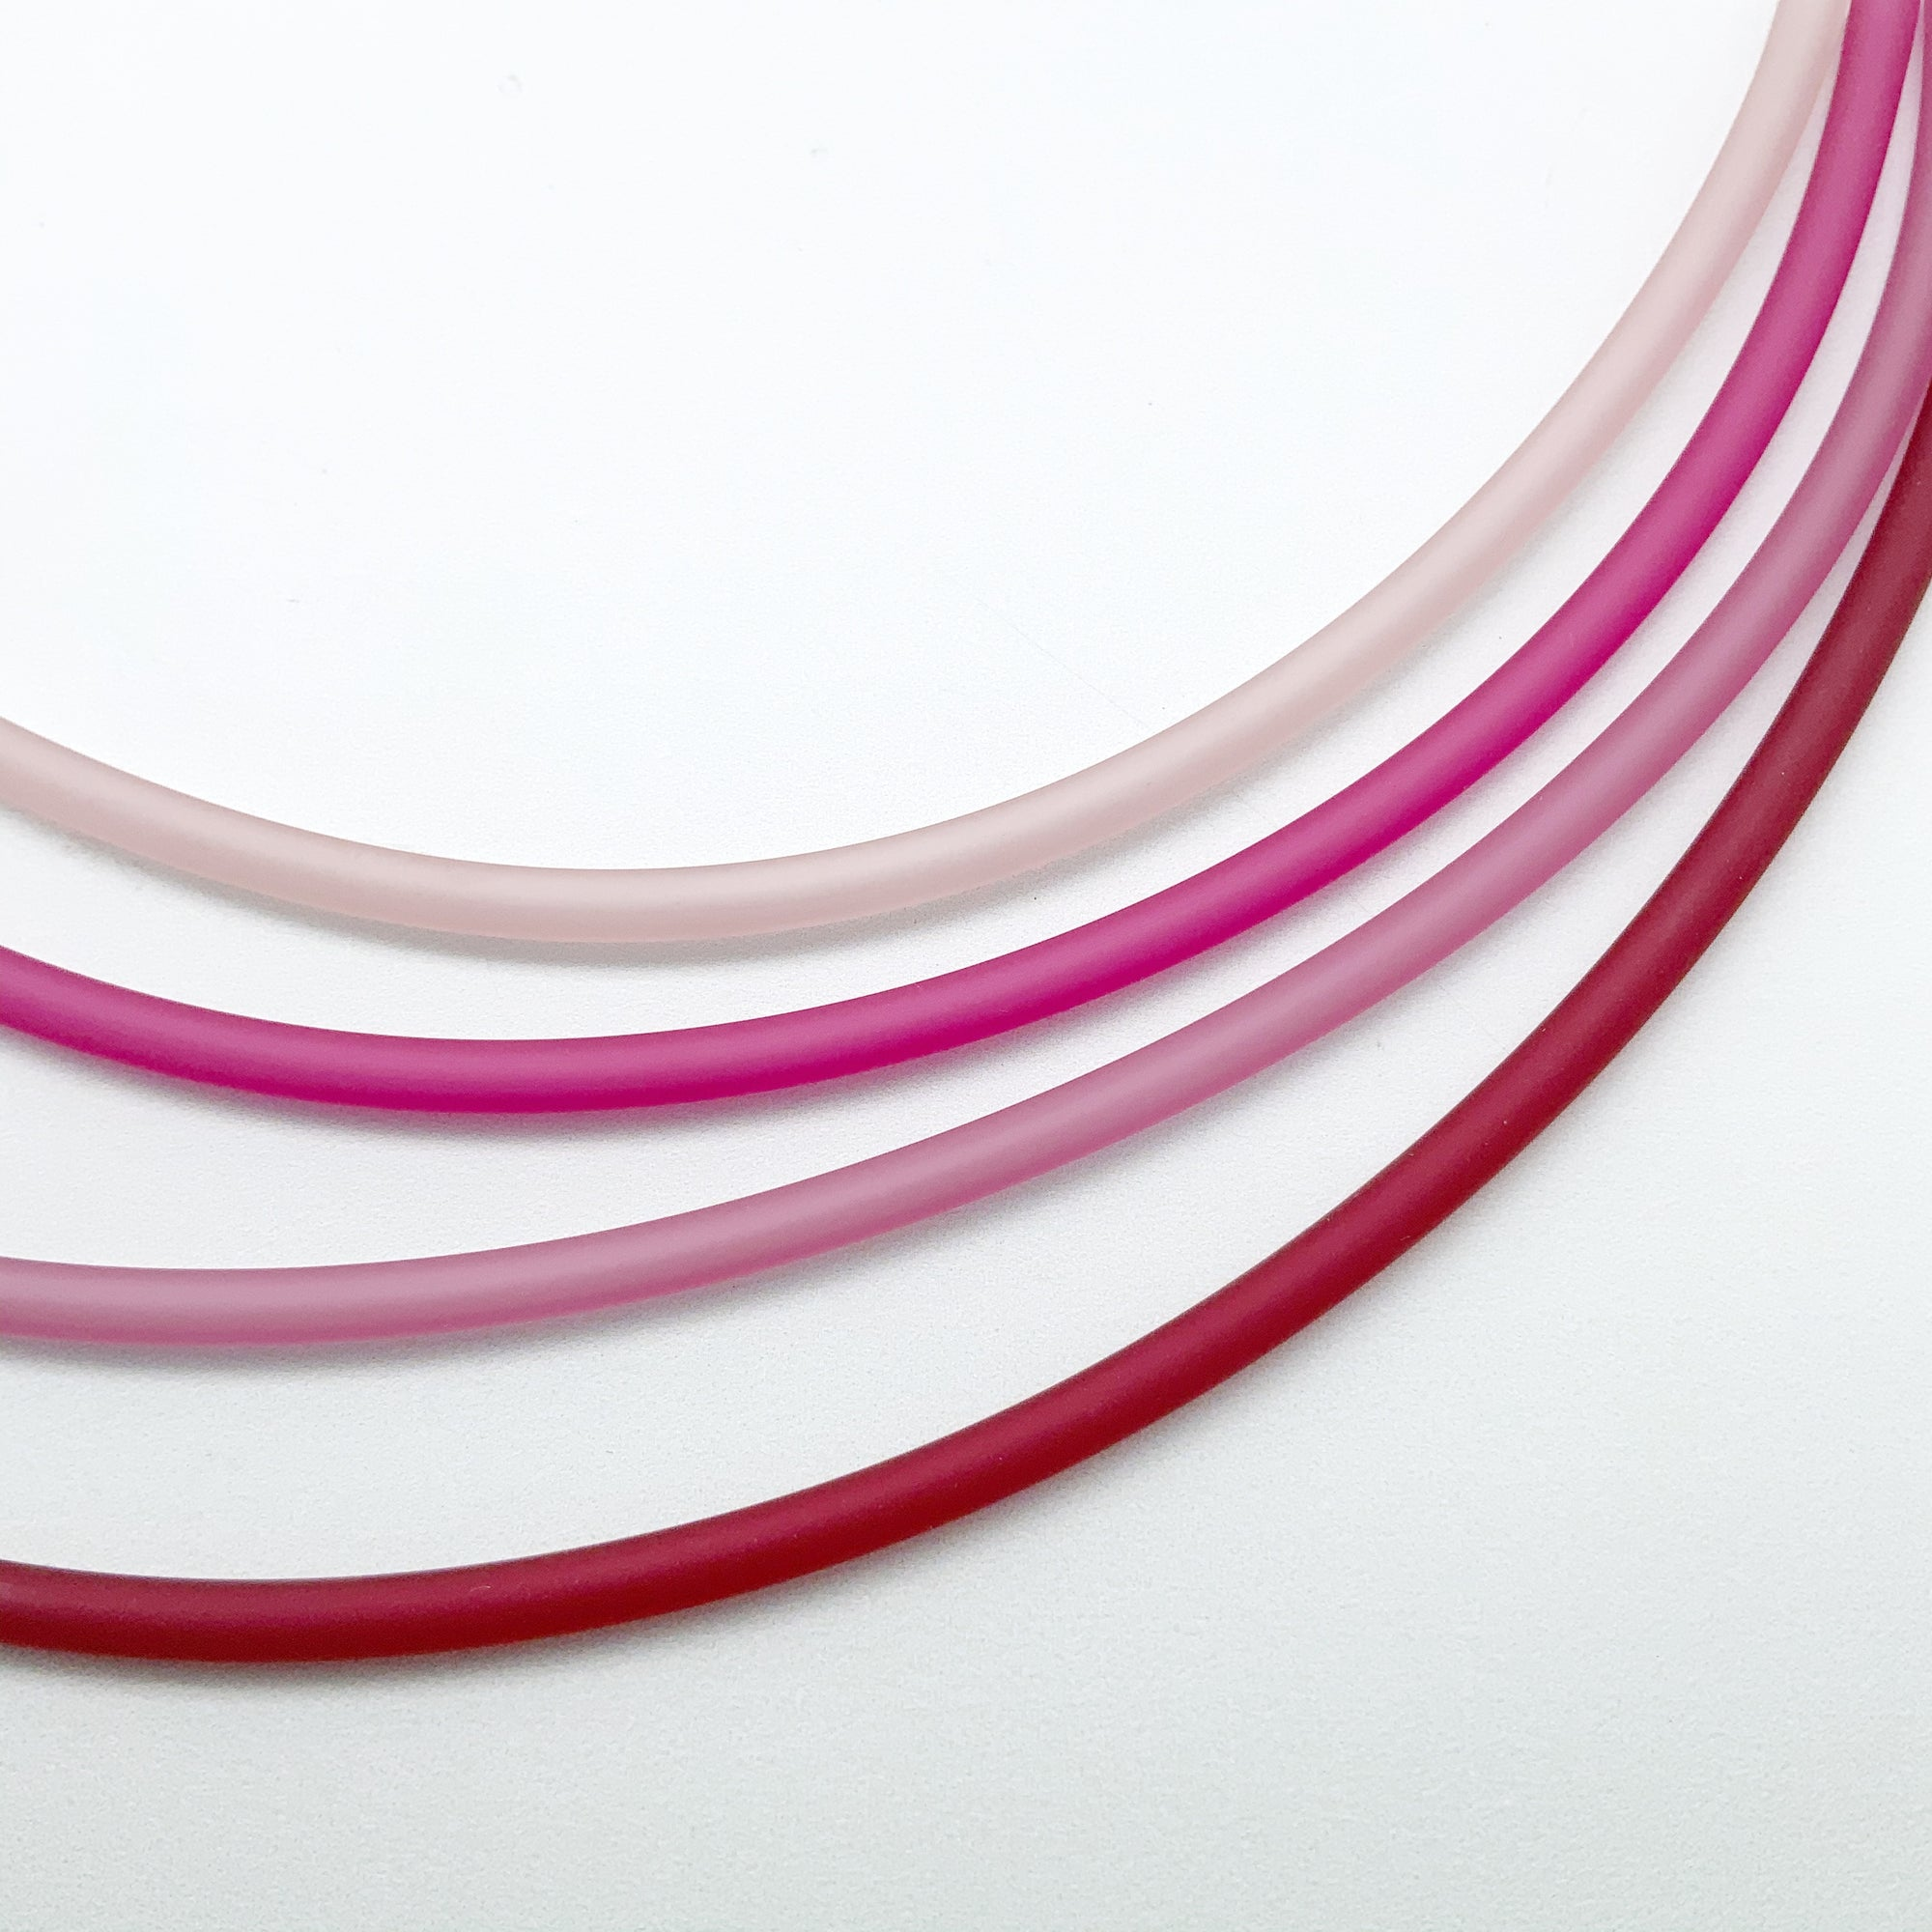 4mm PVC necklaces in pinks